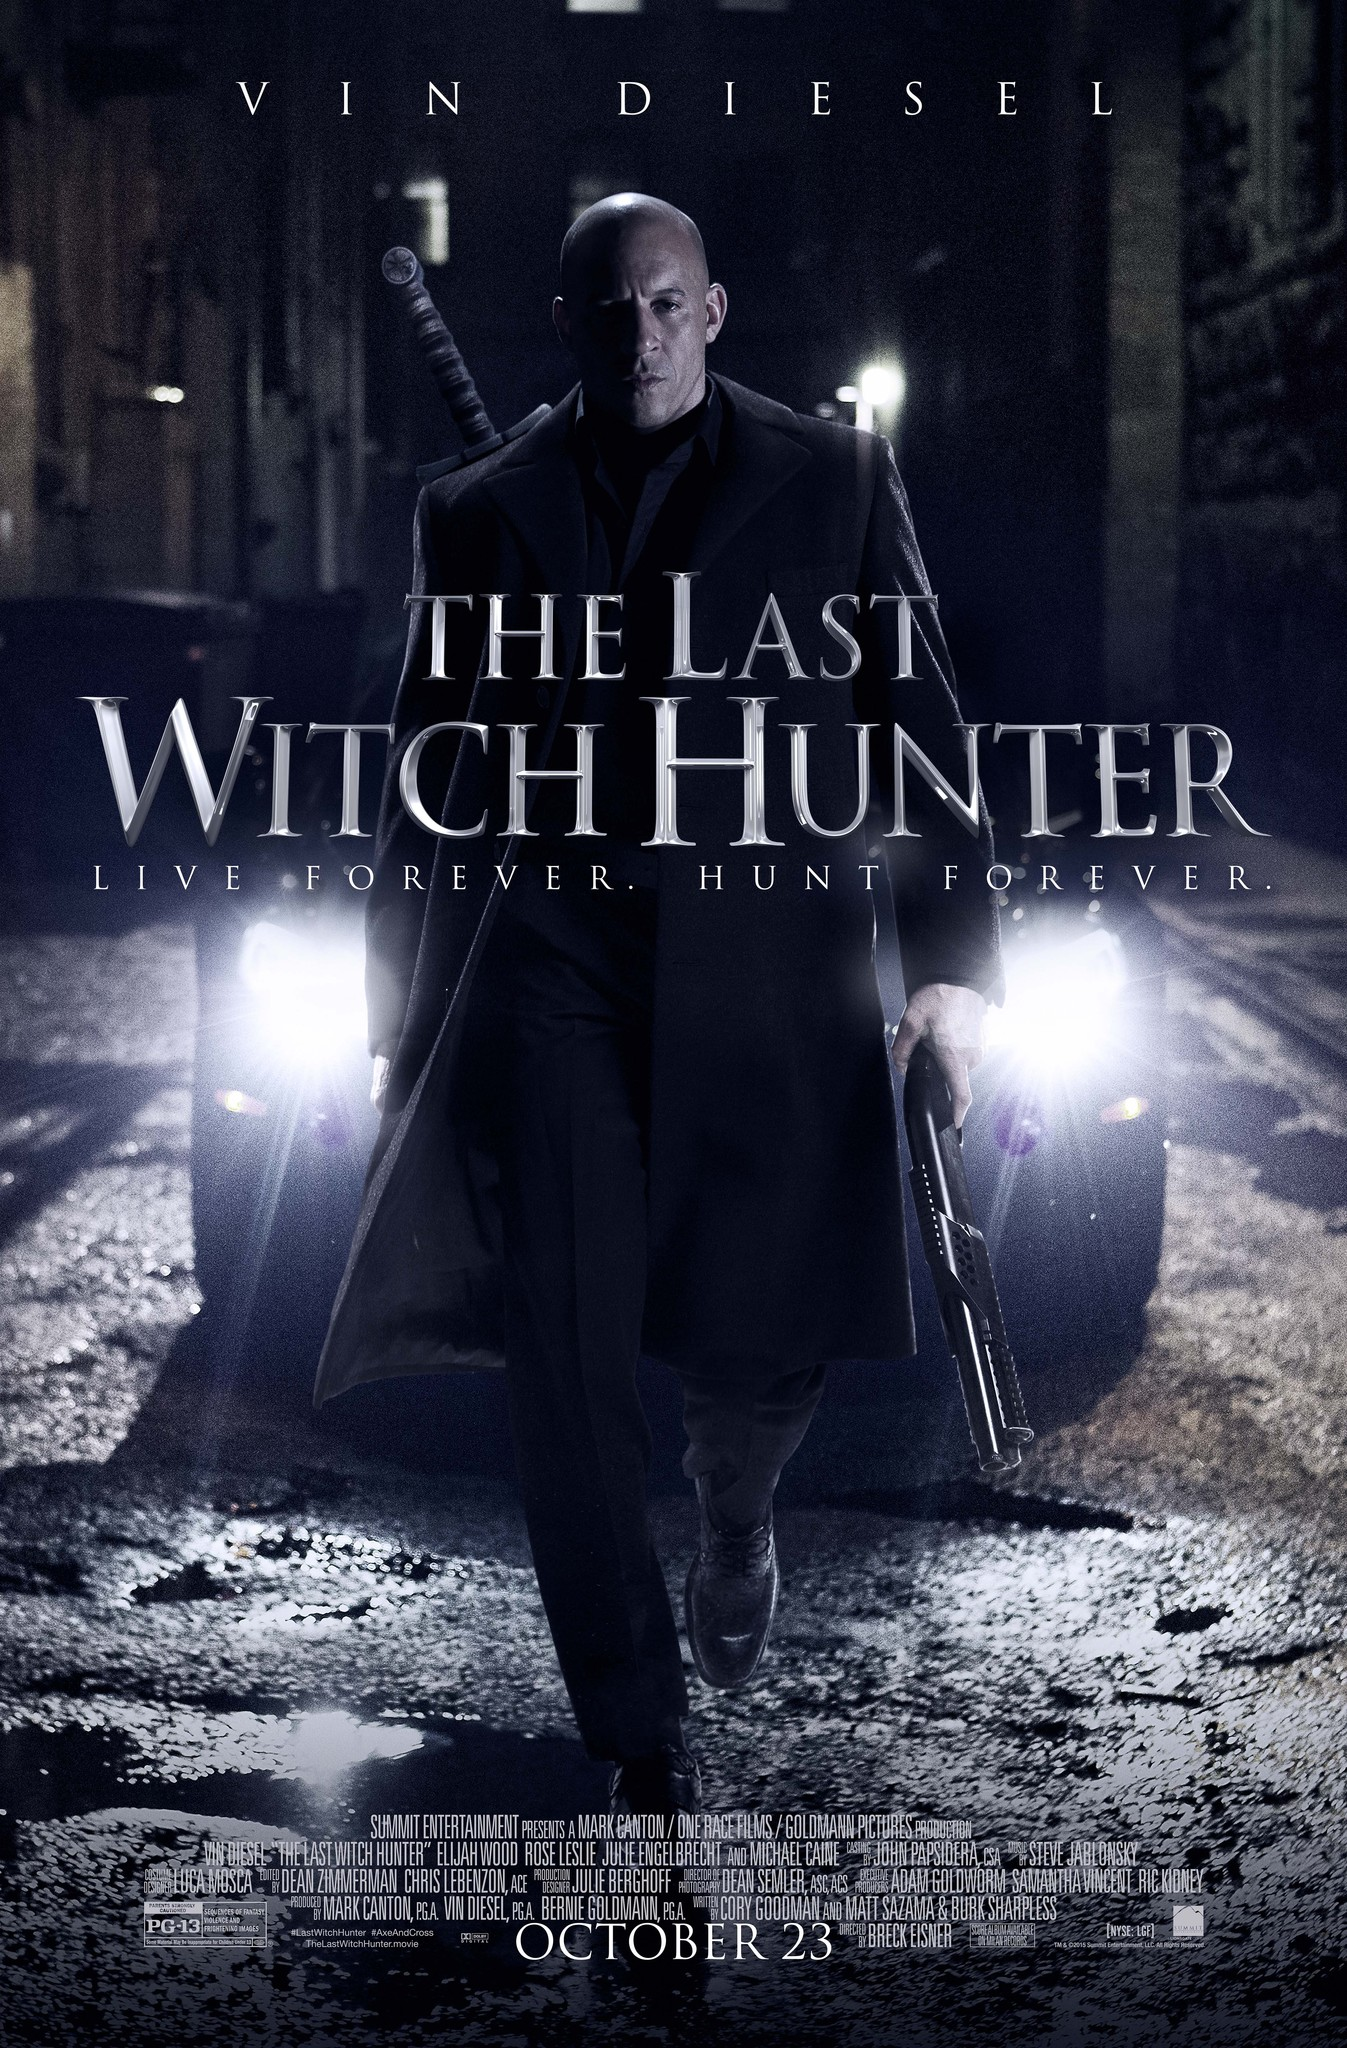 The Last Witch Hunter (2015) Technical Specifications